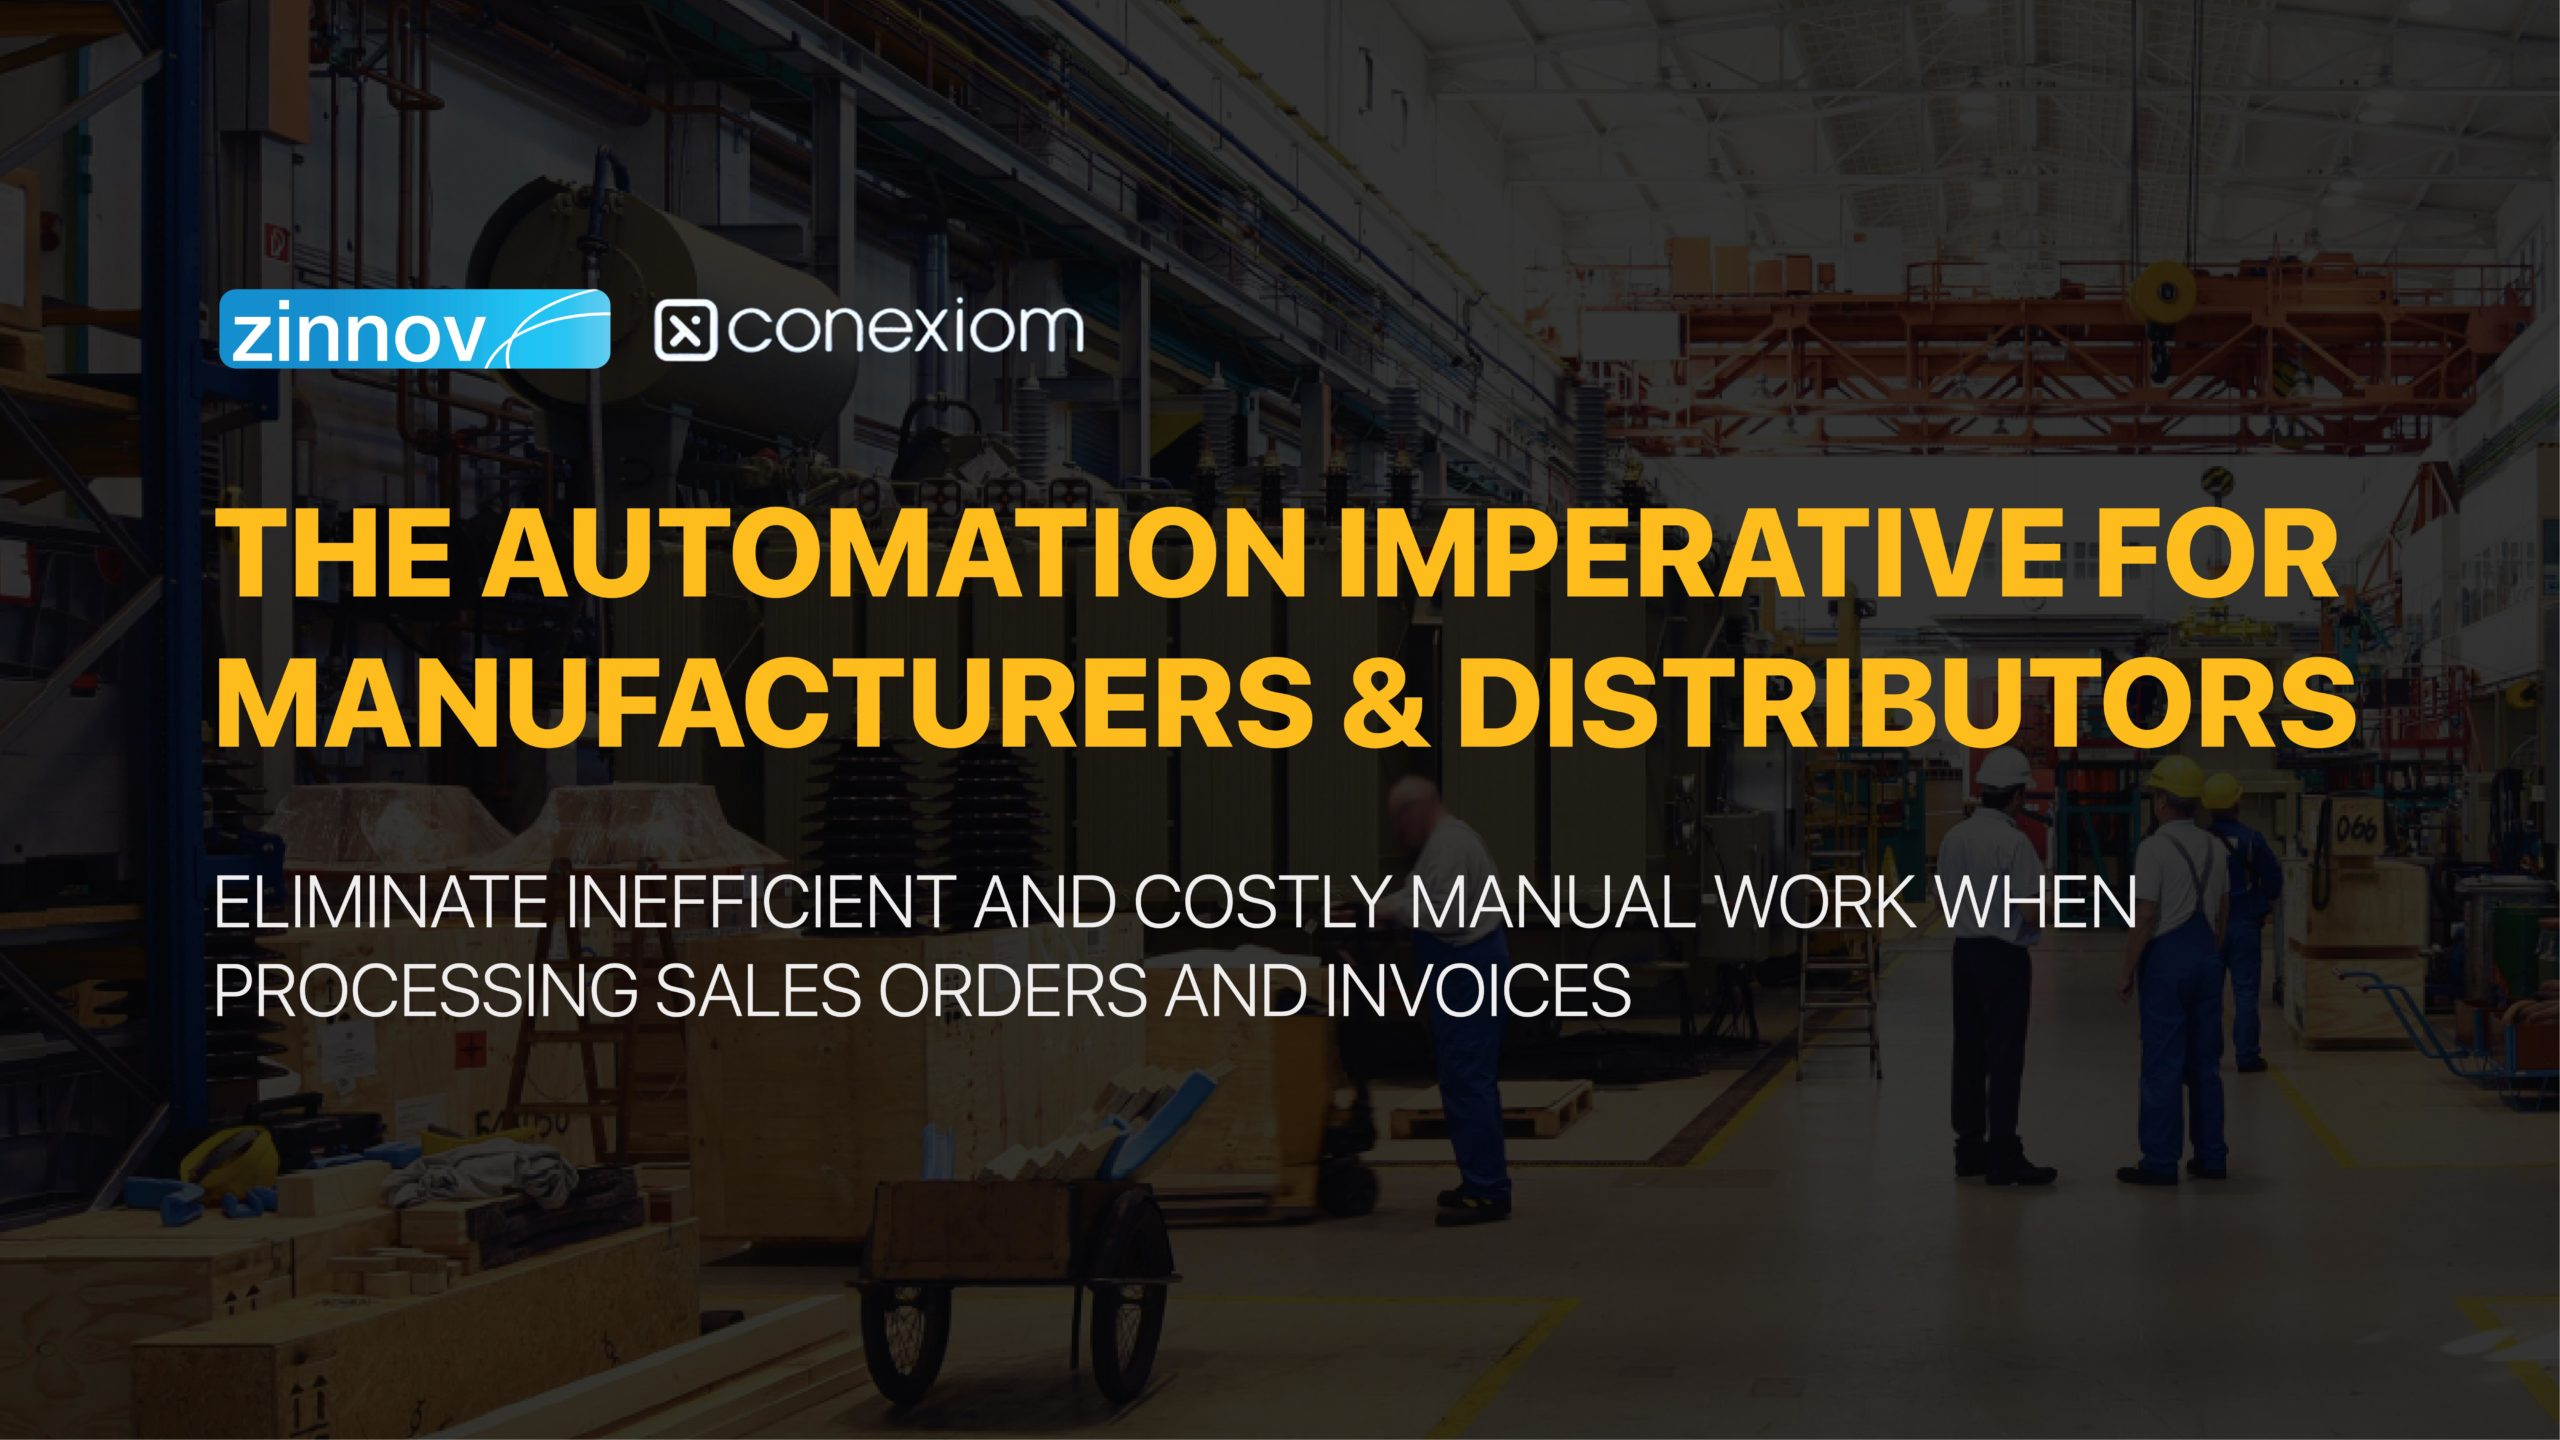 The Automation Imperative For Manufacturers & Distributors